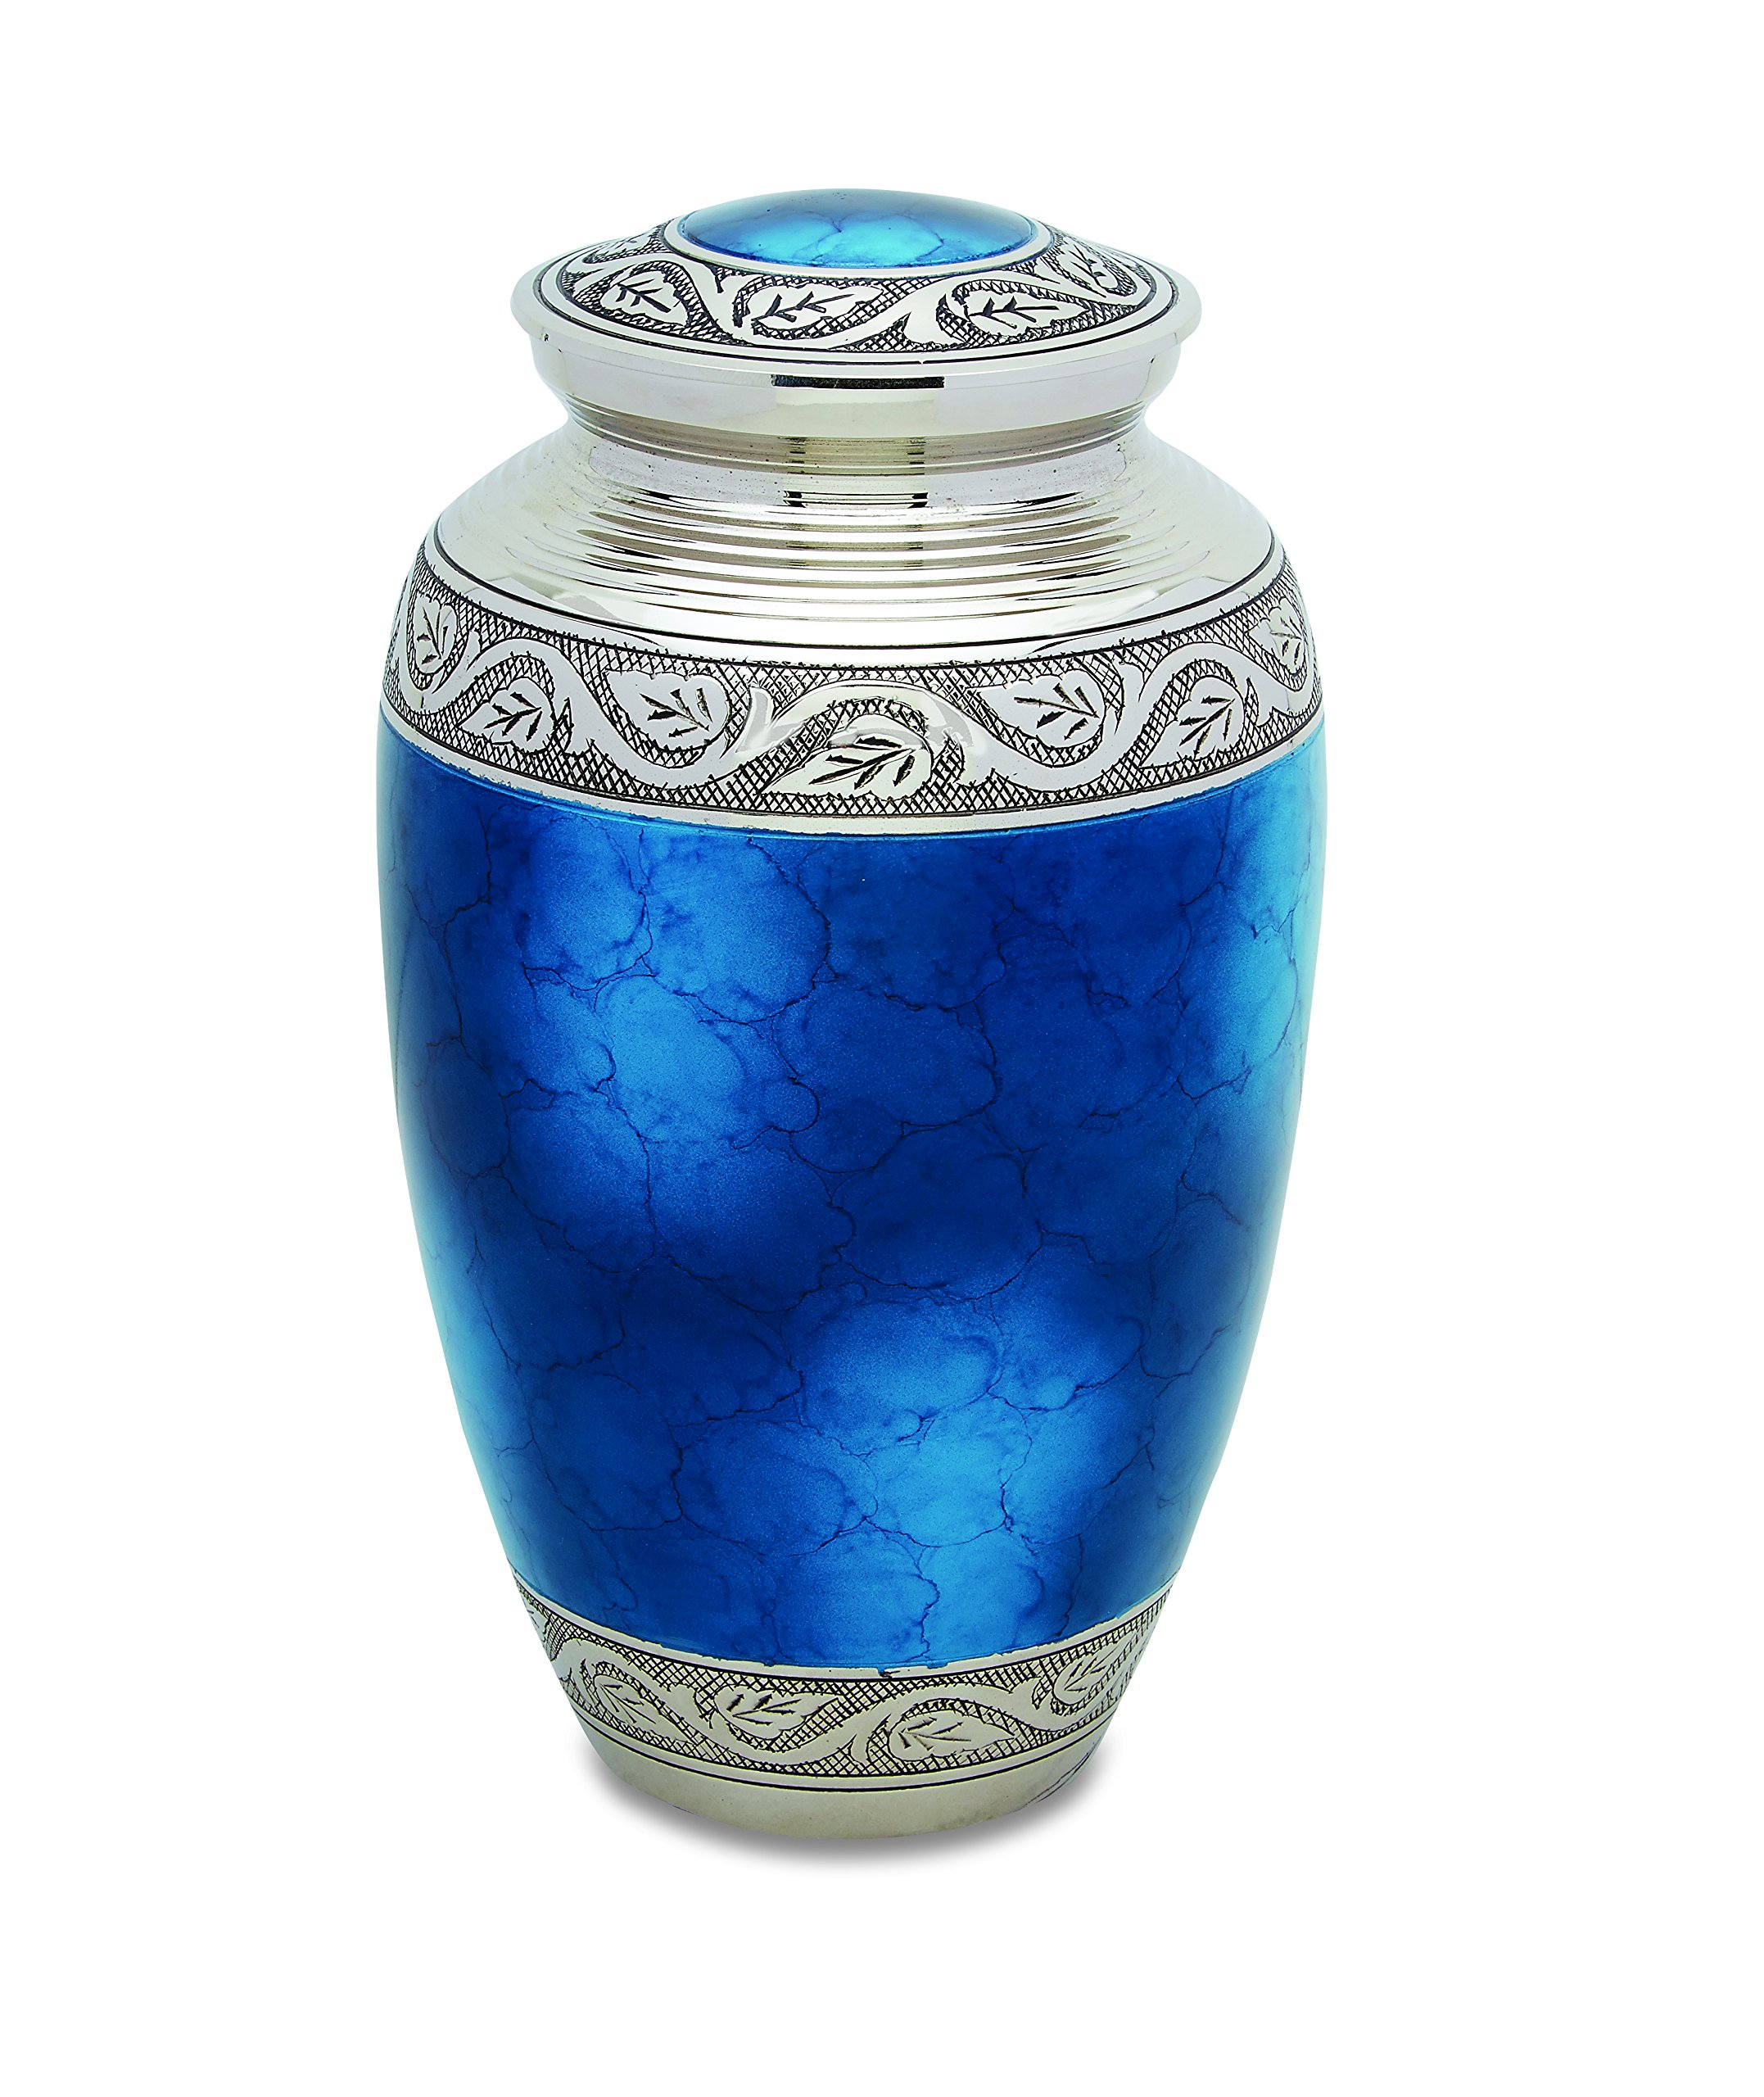 Star Legacy's Mediterranean Mystic - Blue Metal Cremation Adult Urn for Human Ashes w Velvet Bag by Star Legacy (Image #1)